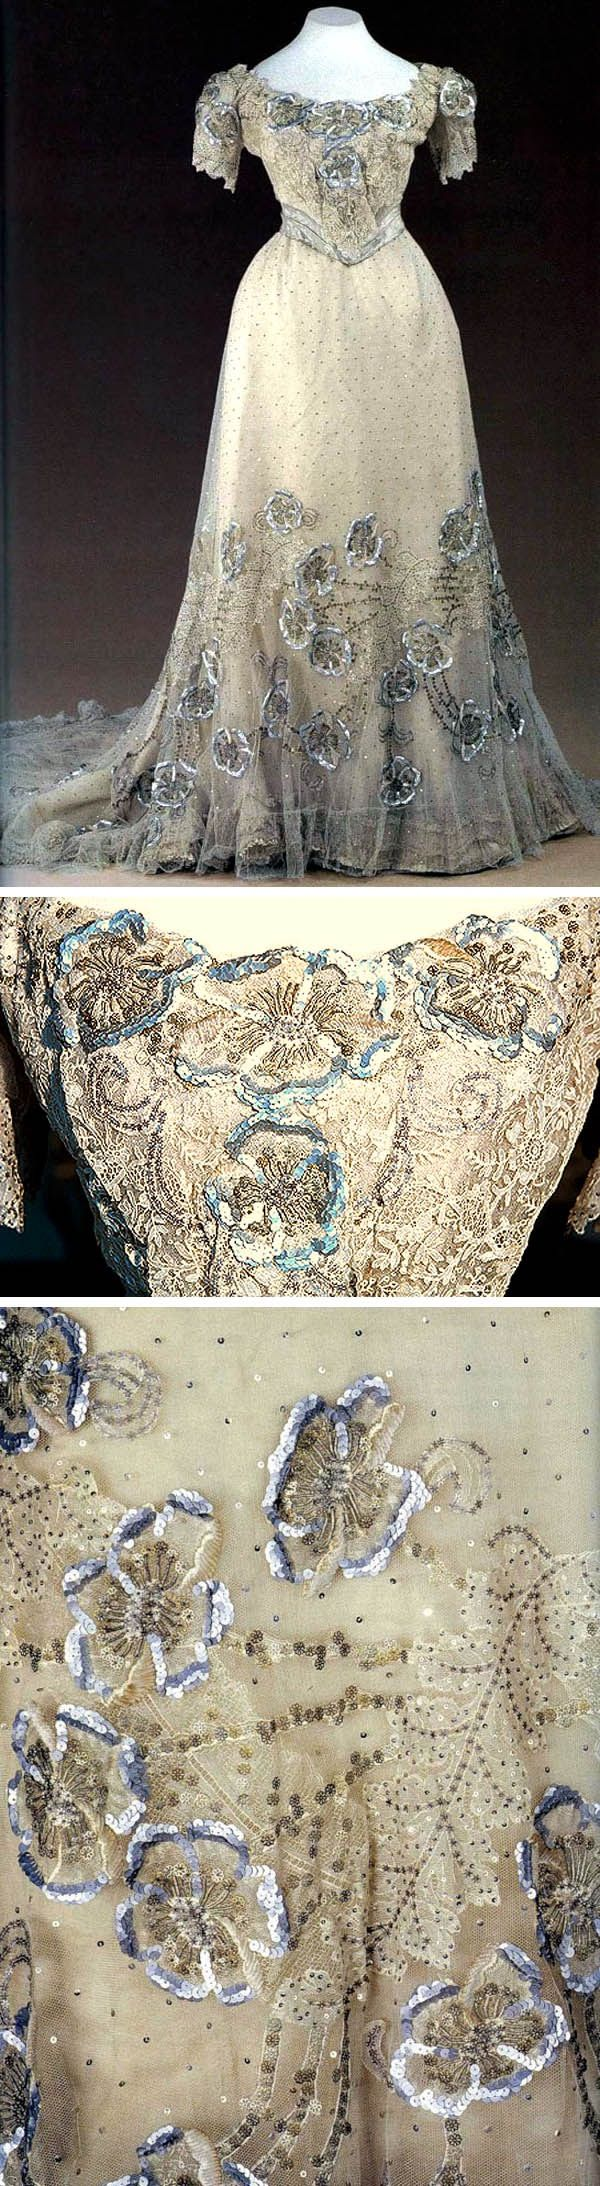 1900s (early) Evening gown, by Nadezhda Lamanova, Moscow of white satin with tulle and chiffon, sequins, and embroidery, silver brocade belt made for Empress Alexandra